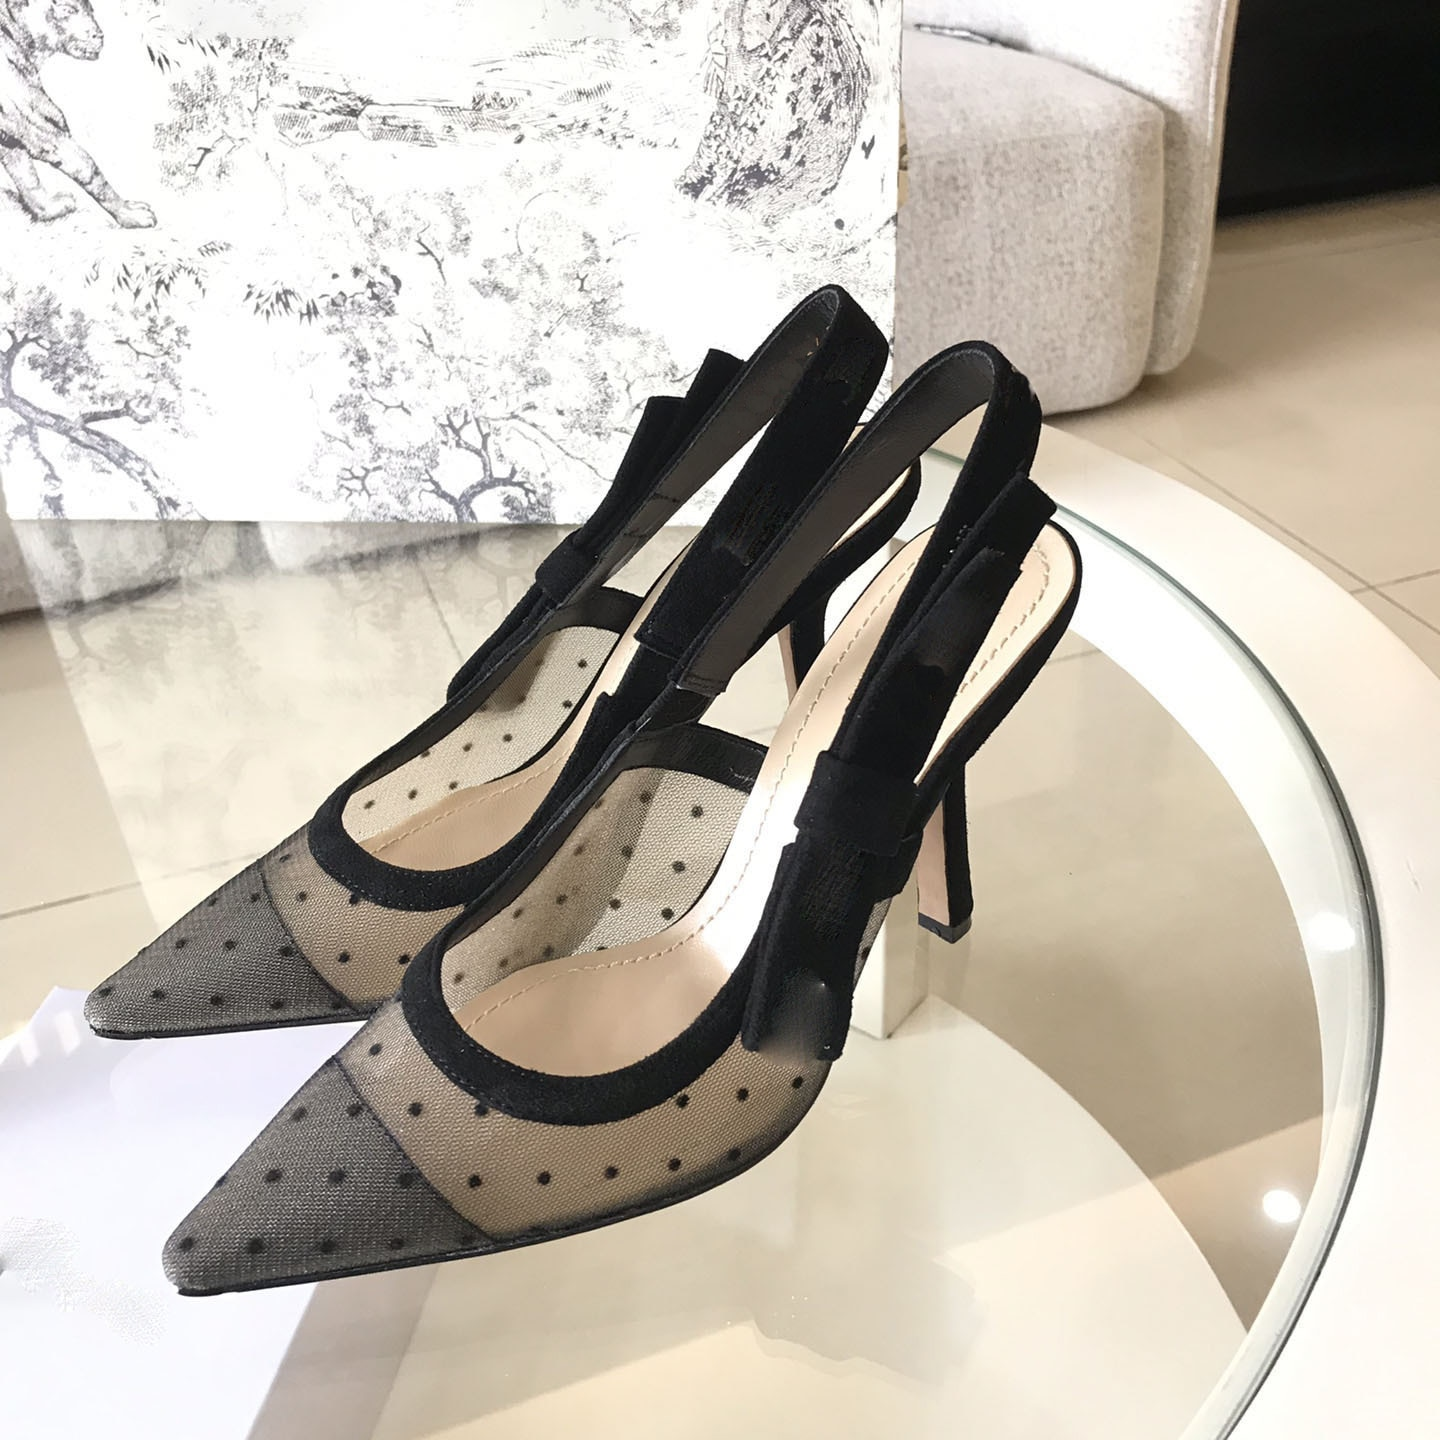 High heeled sandals Gladiator Leather Women Fine heel shoes Flat bottom Fashion sexy letter cloth woman Large size 35-42 enlarge